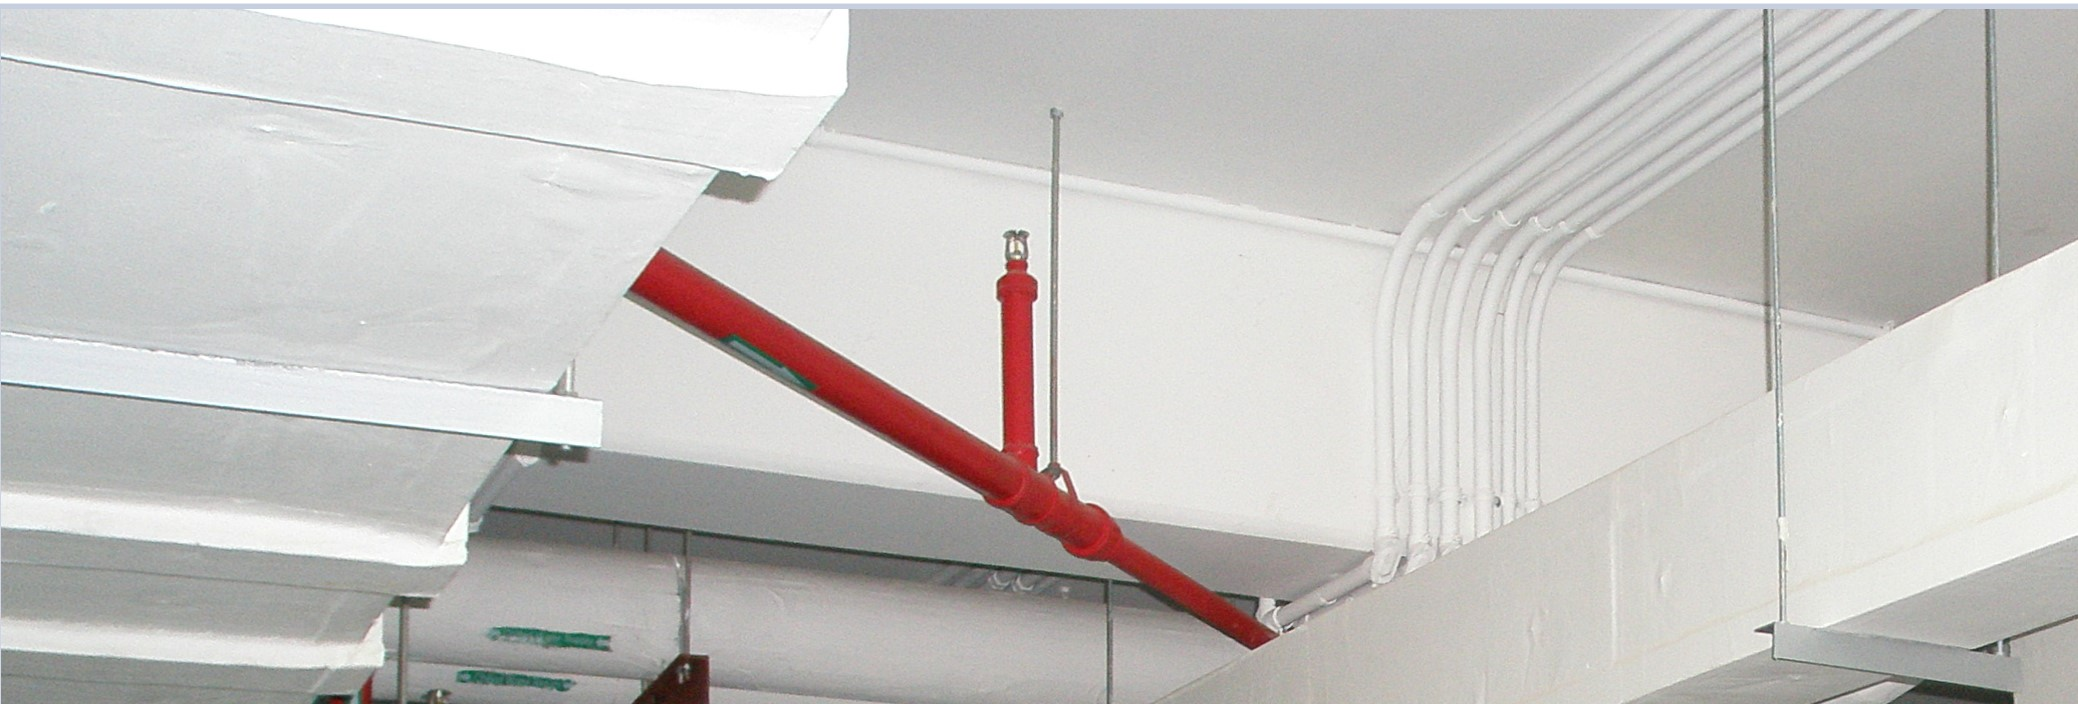 Dry Pipe Fire Sprinkler System Winterization